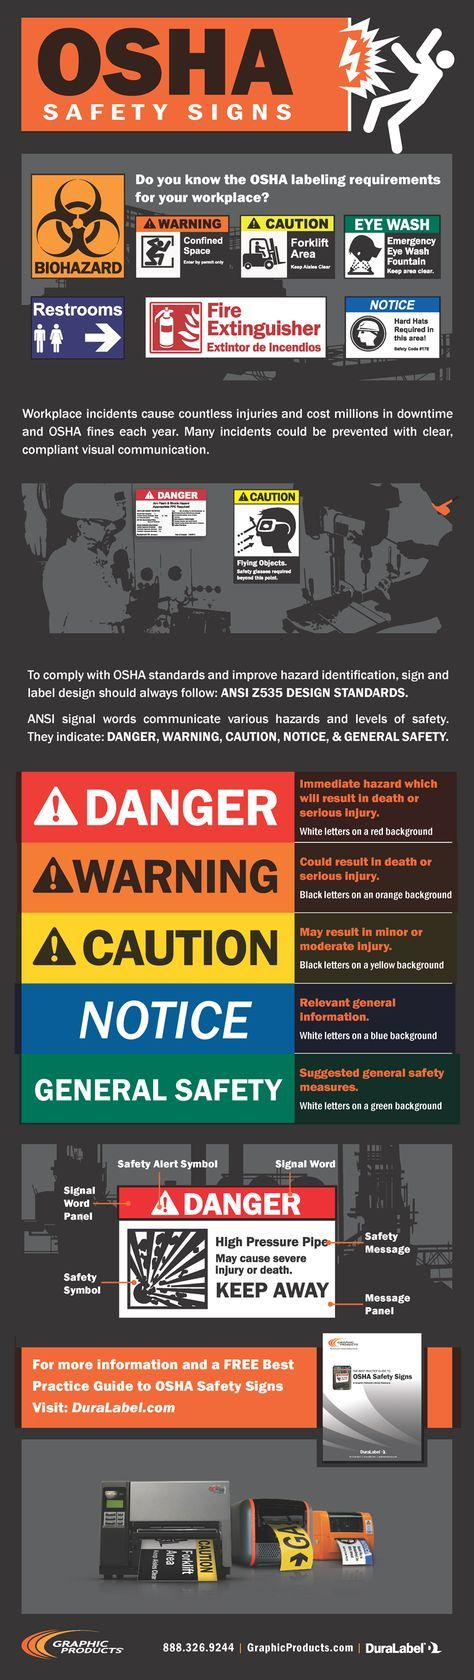 OSHAsafetysignsinfographic.png Occupational health